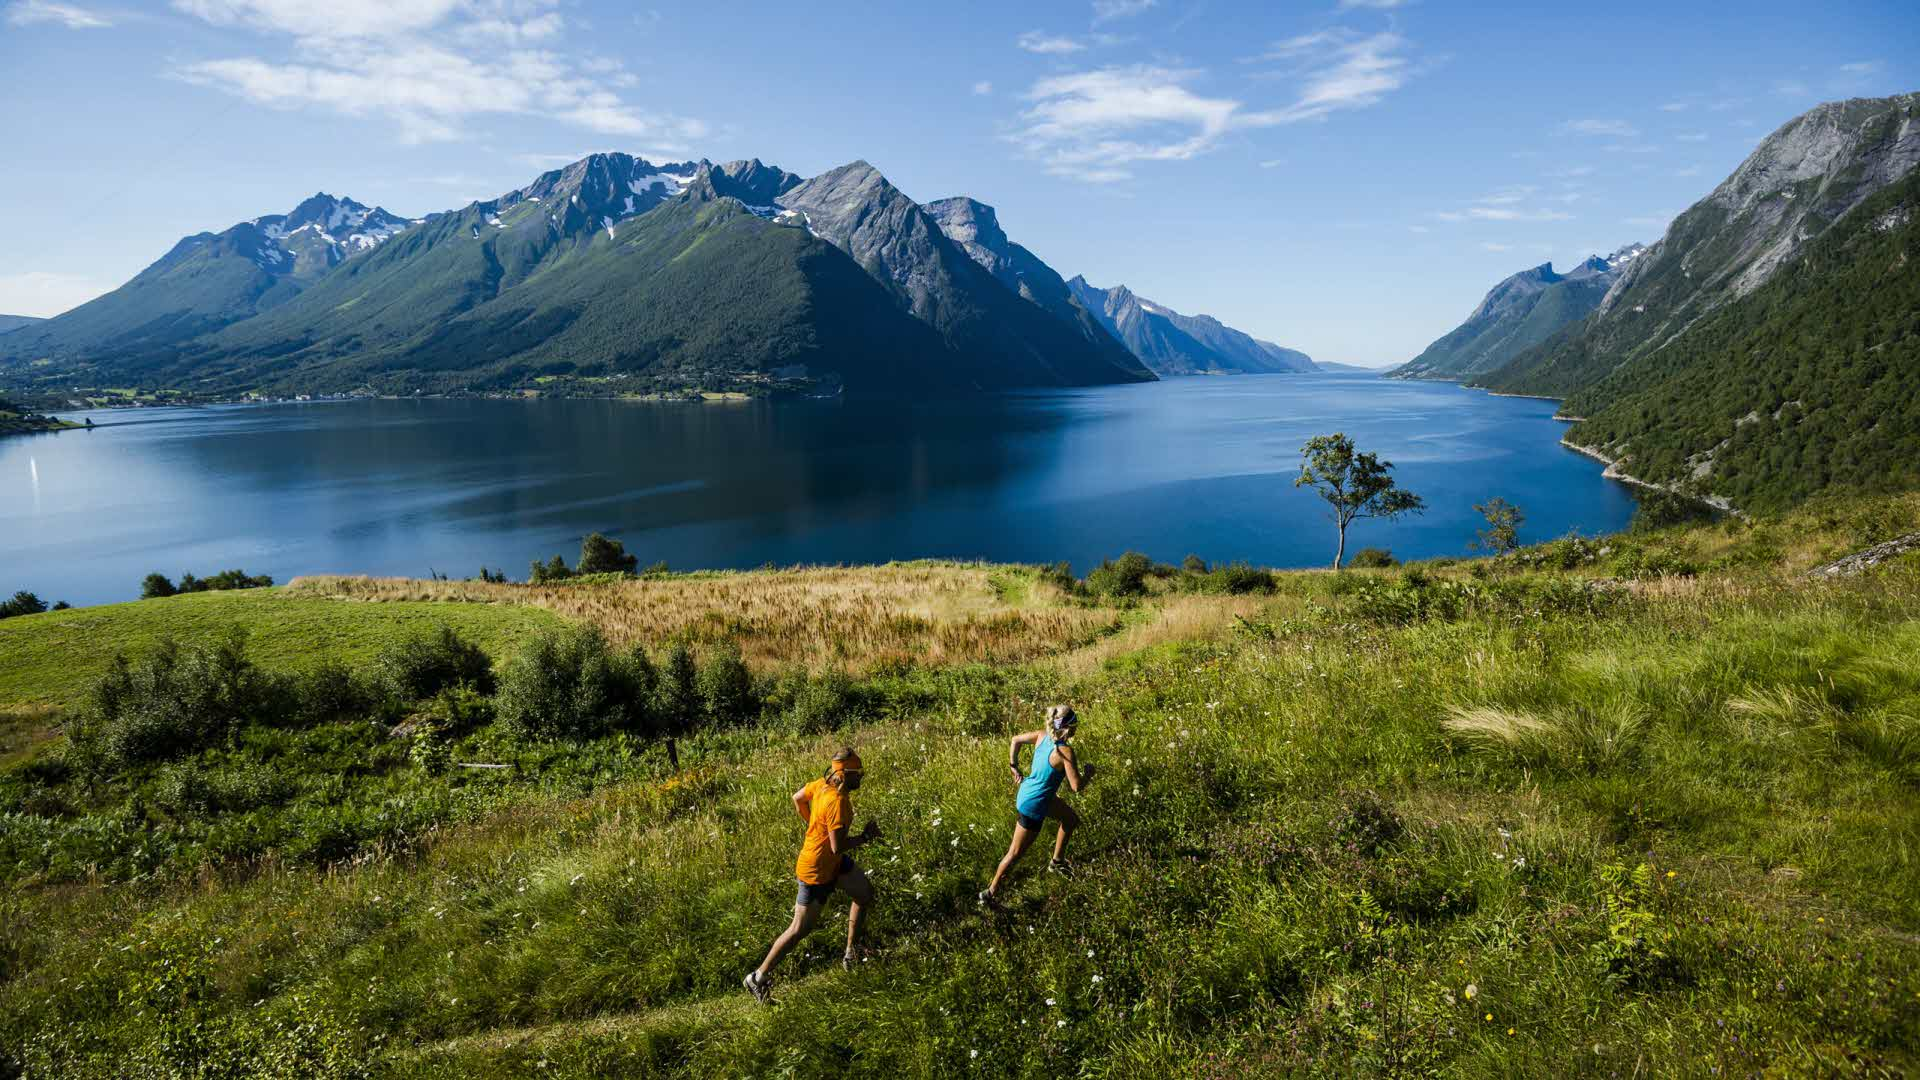 2 people in summer jogging by the hjorondfjord dramatic mountains in background